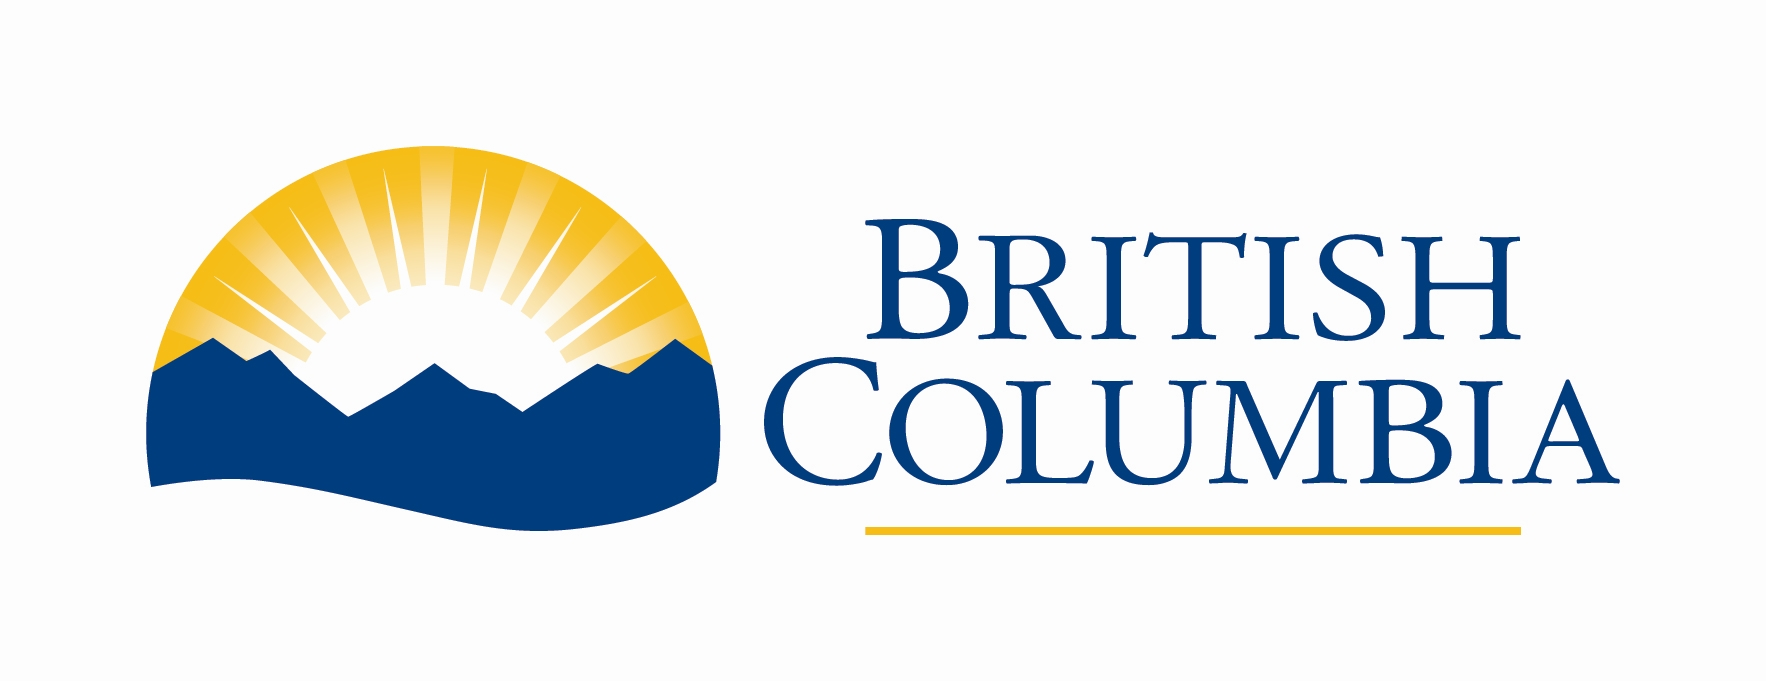 11-06-07-new-bc-government-logo-coloured.jpg